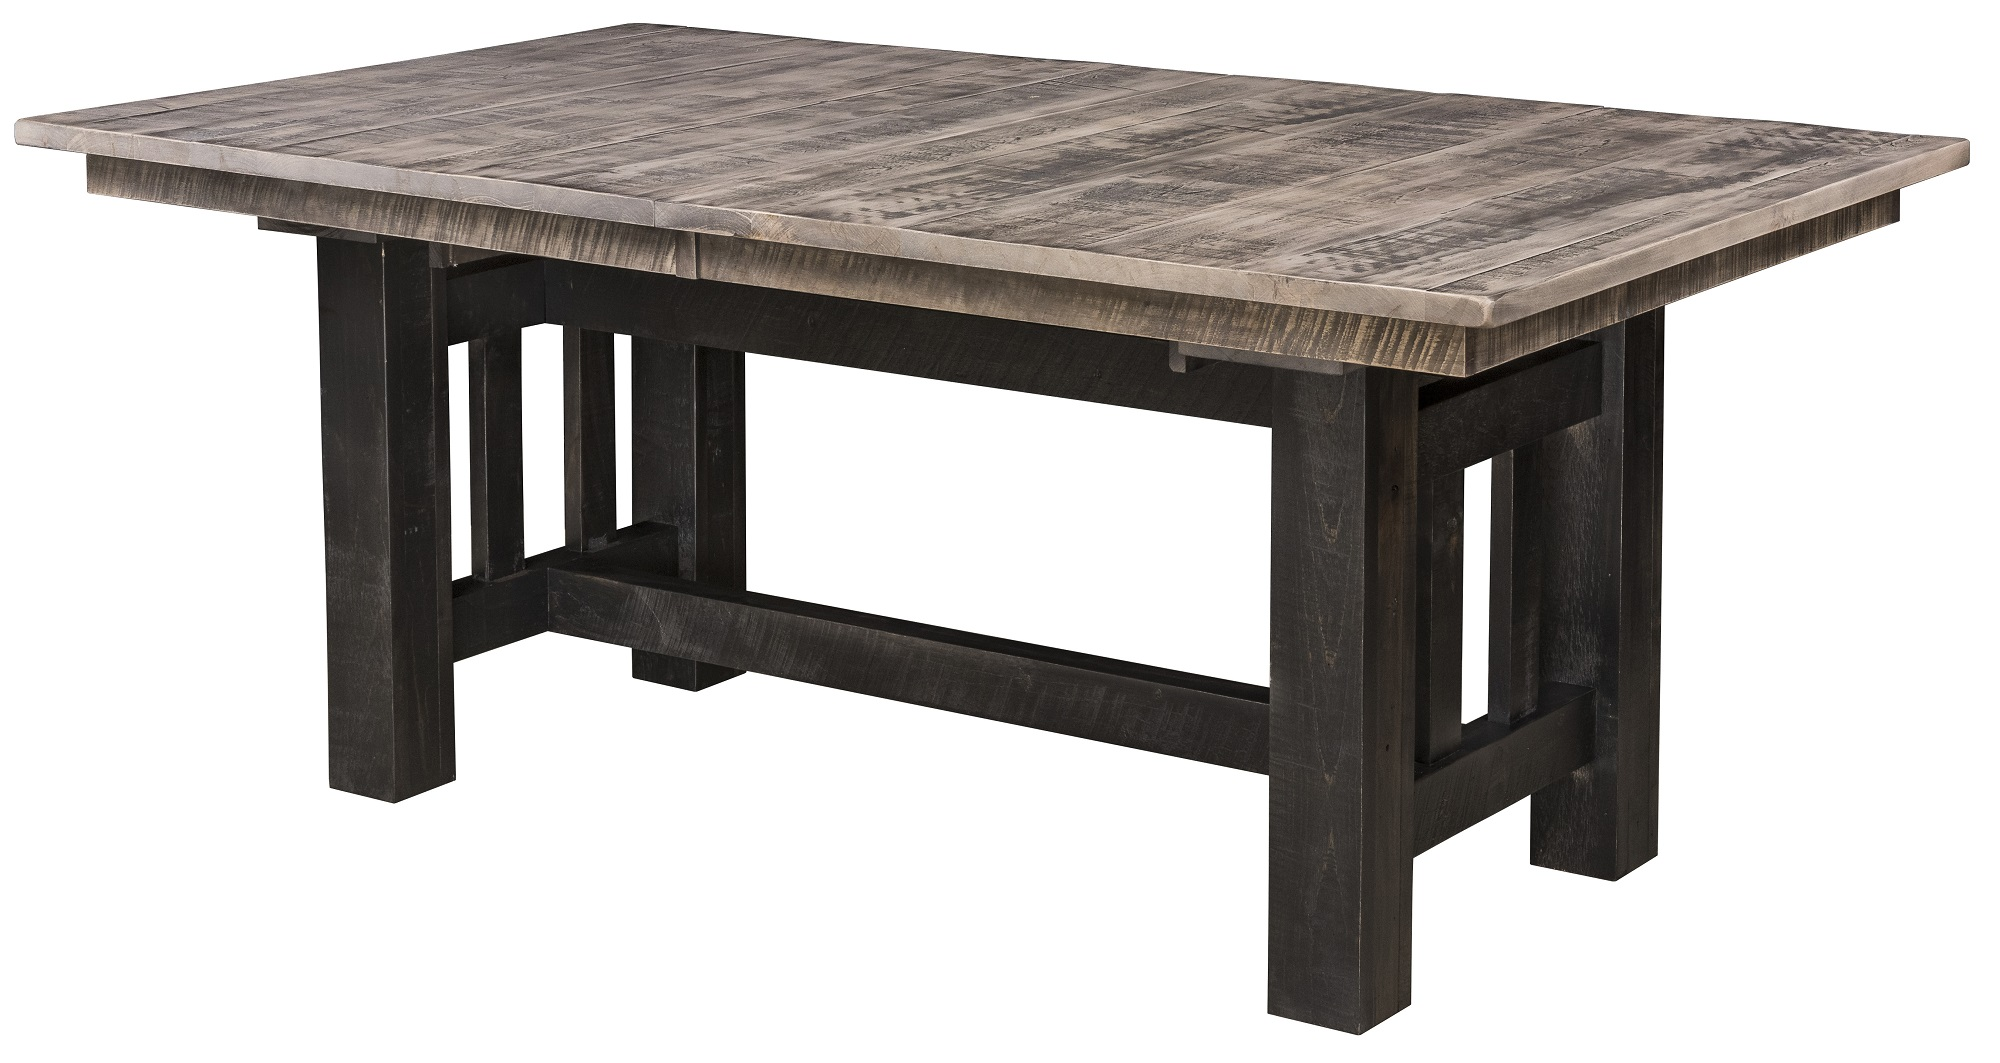 Rough Cut Maple Wood Trestle Dining Table